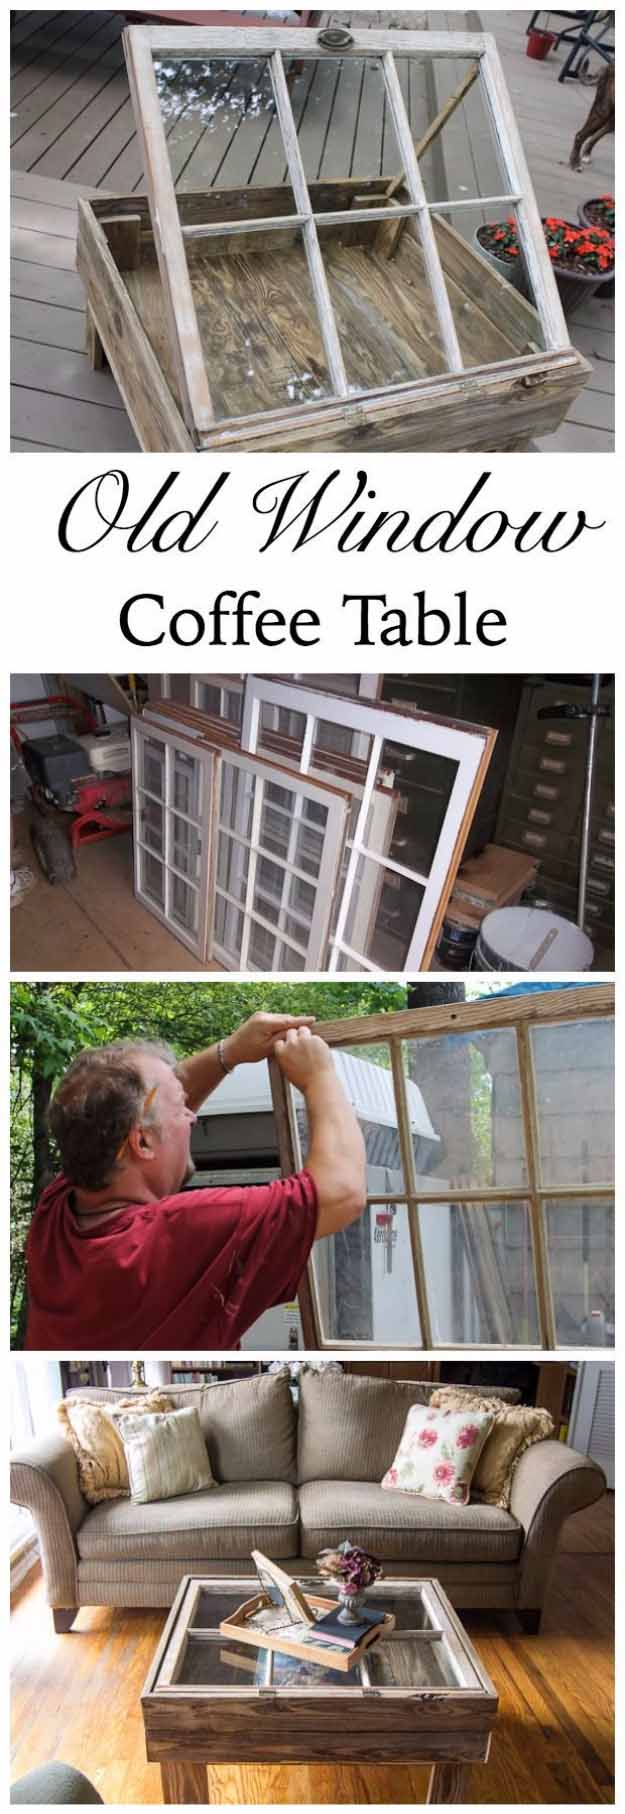 easy diy furniture ideas upcycling projects with old windows diy rustic coffee table ideas